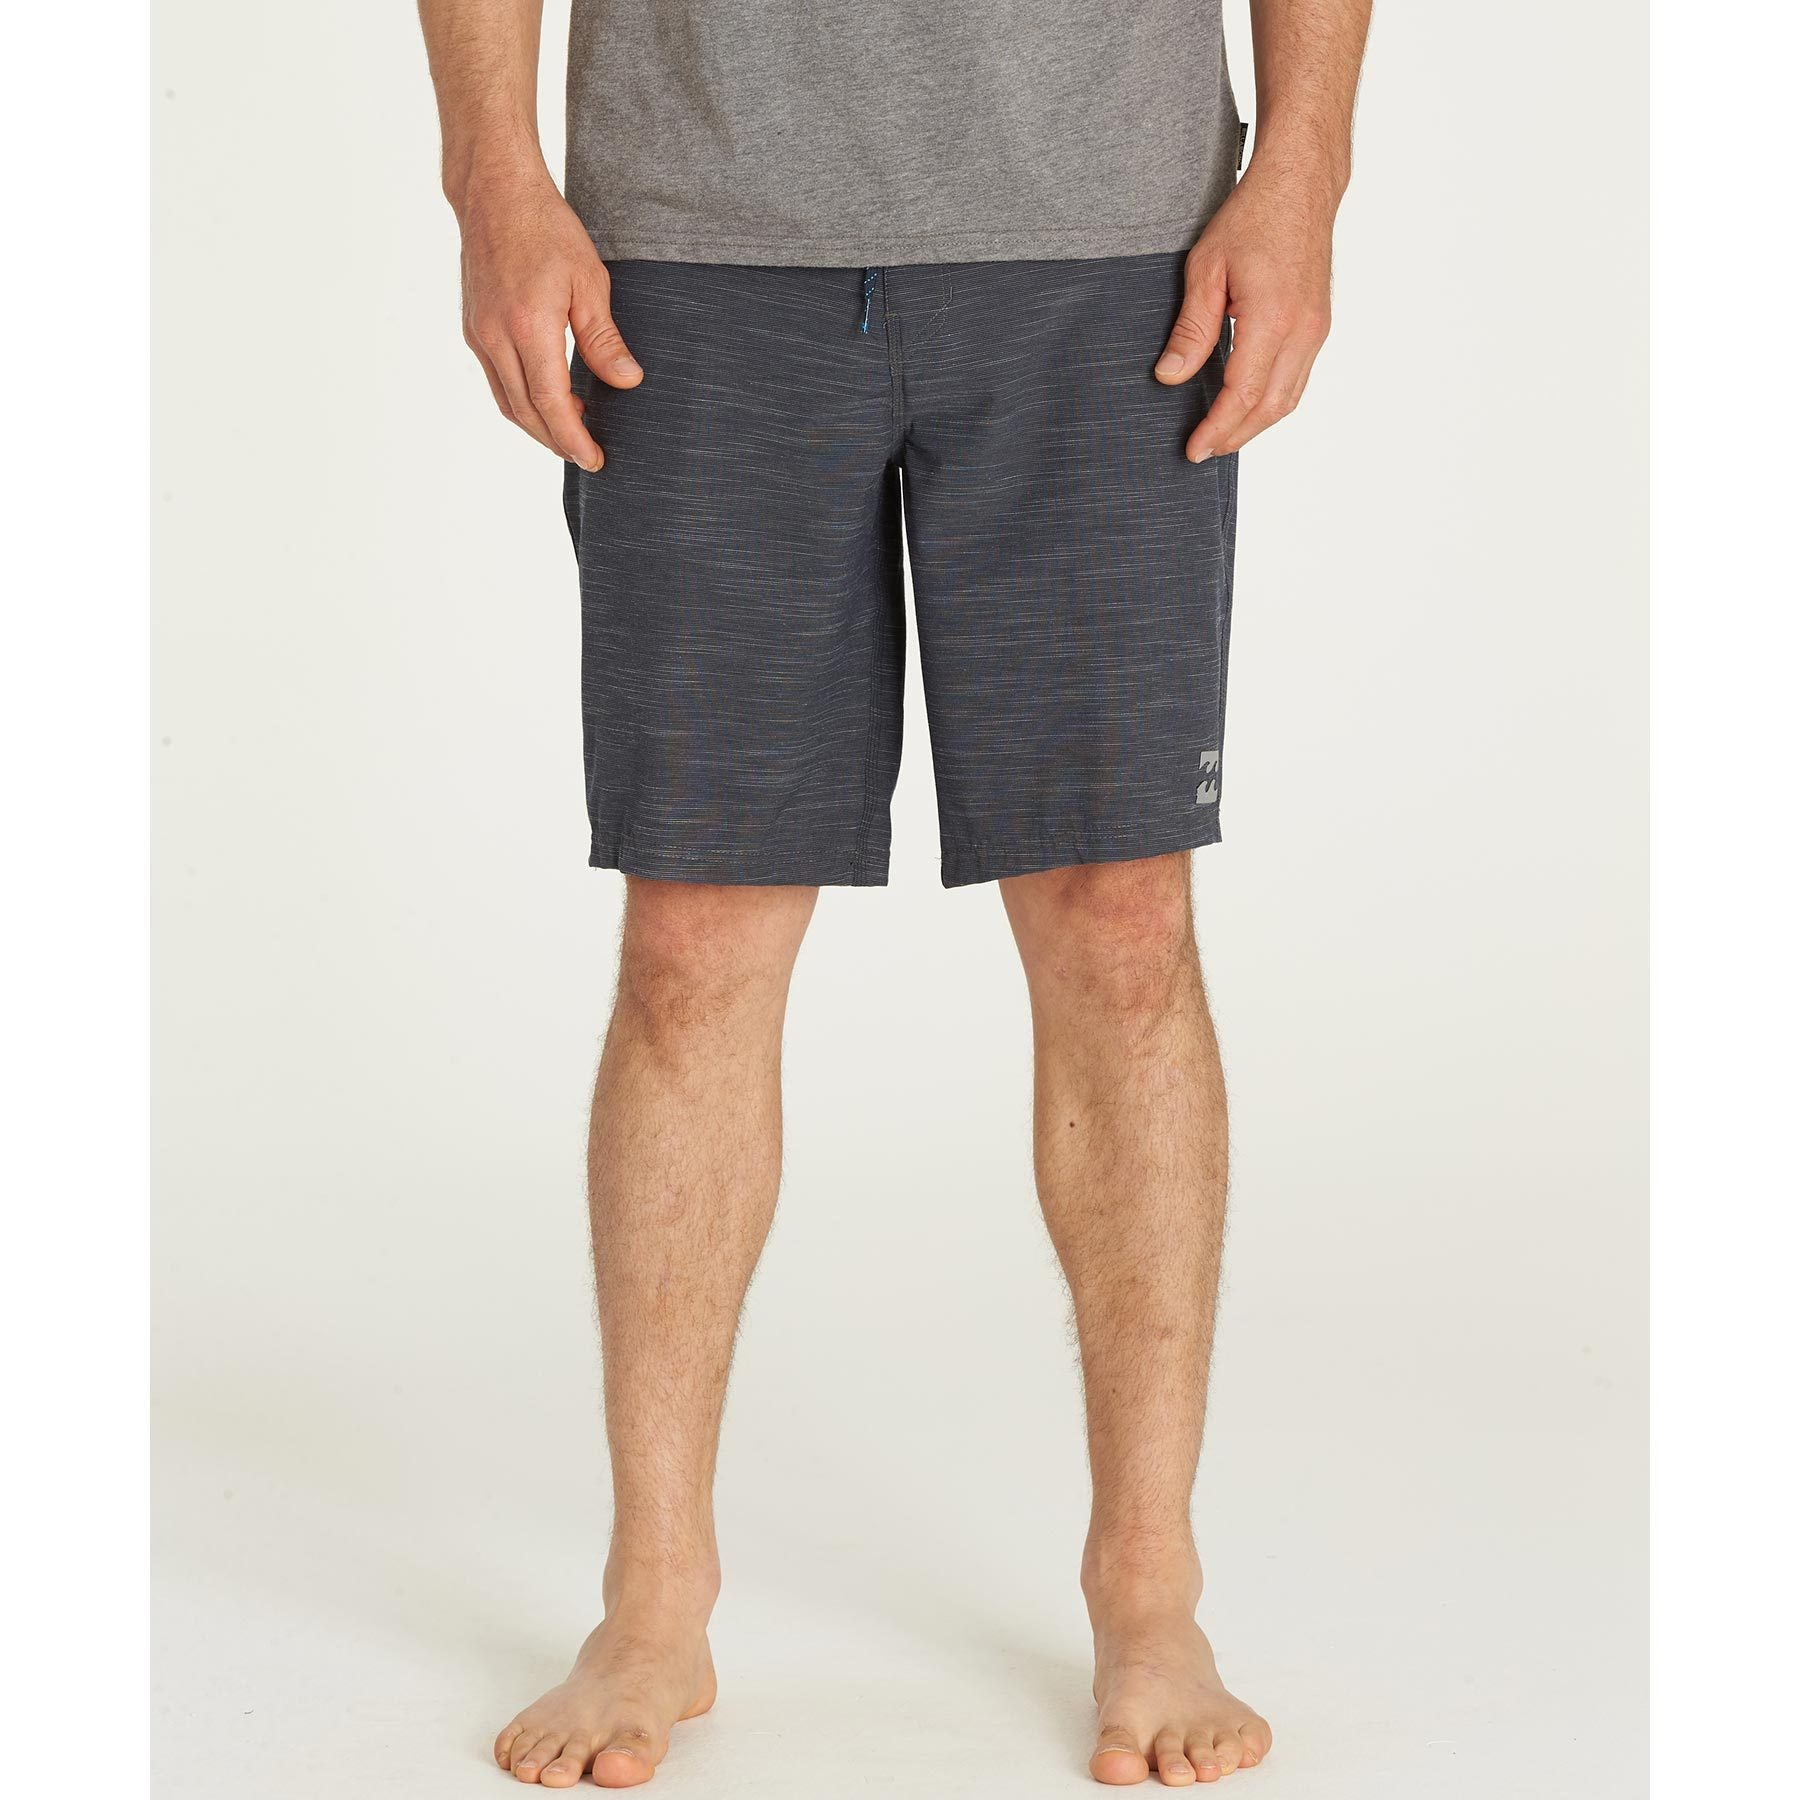 Billabong Submersibles - Cool Shorts for Water